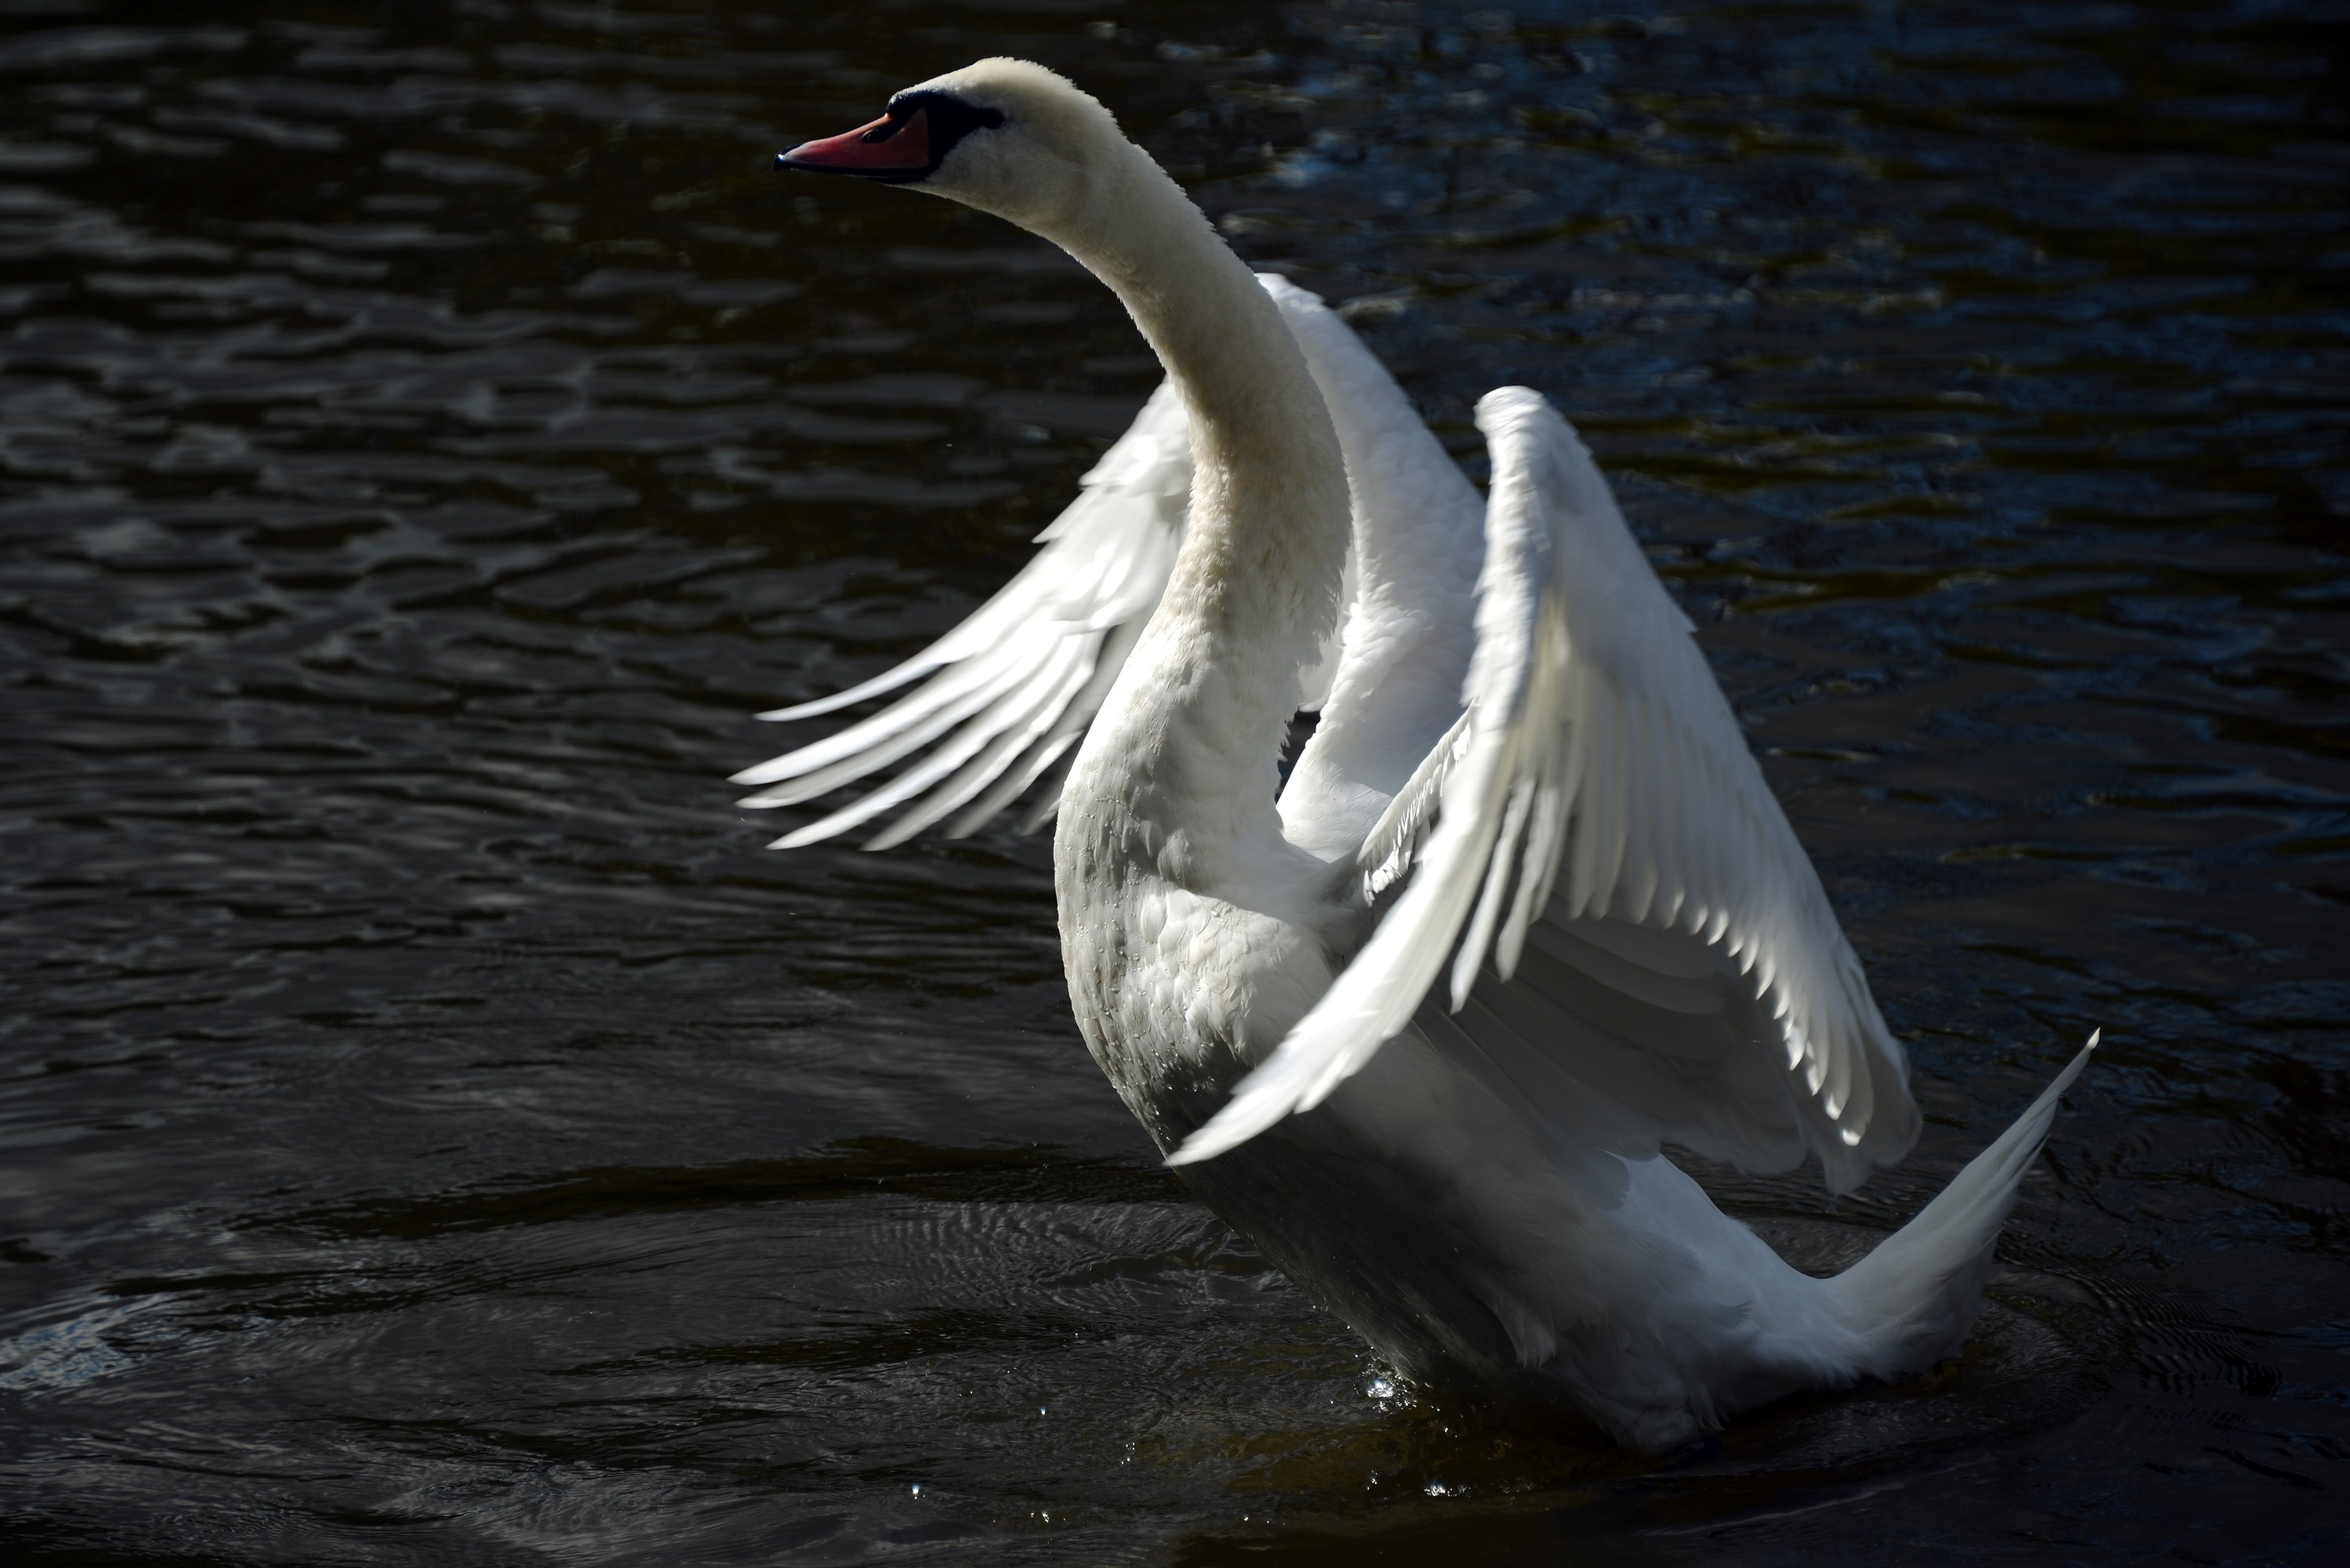 BRITAIN-SWAN-FEATURE